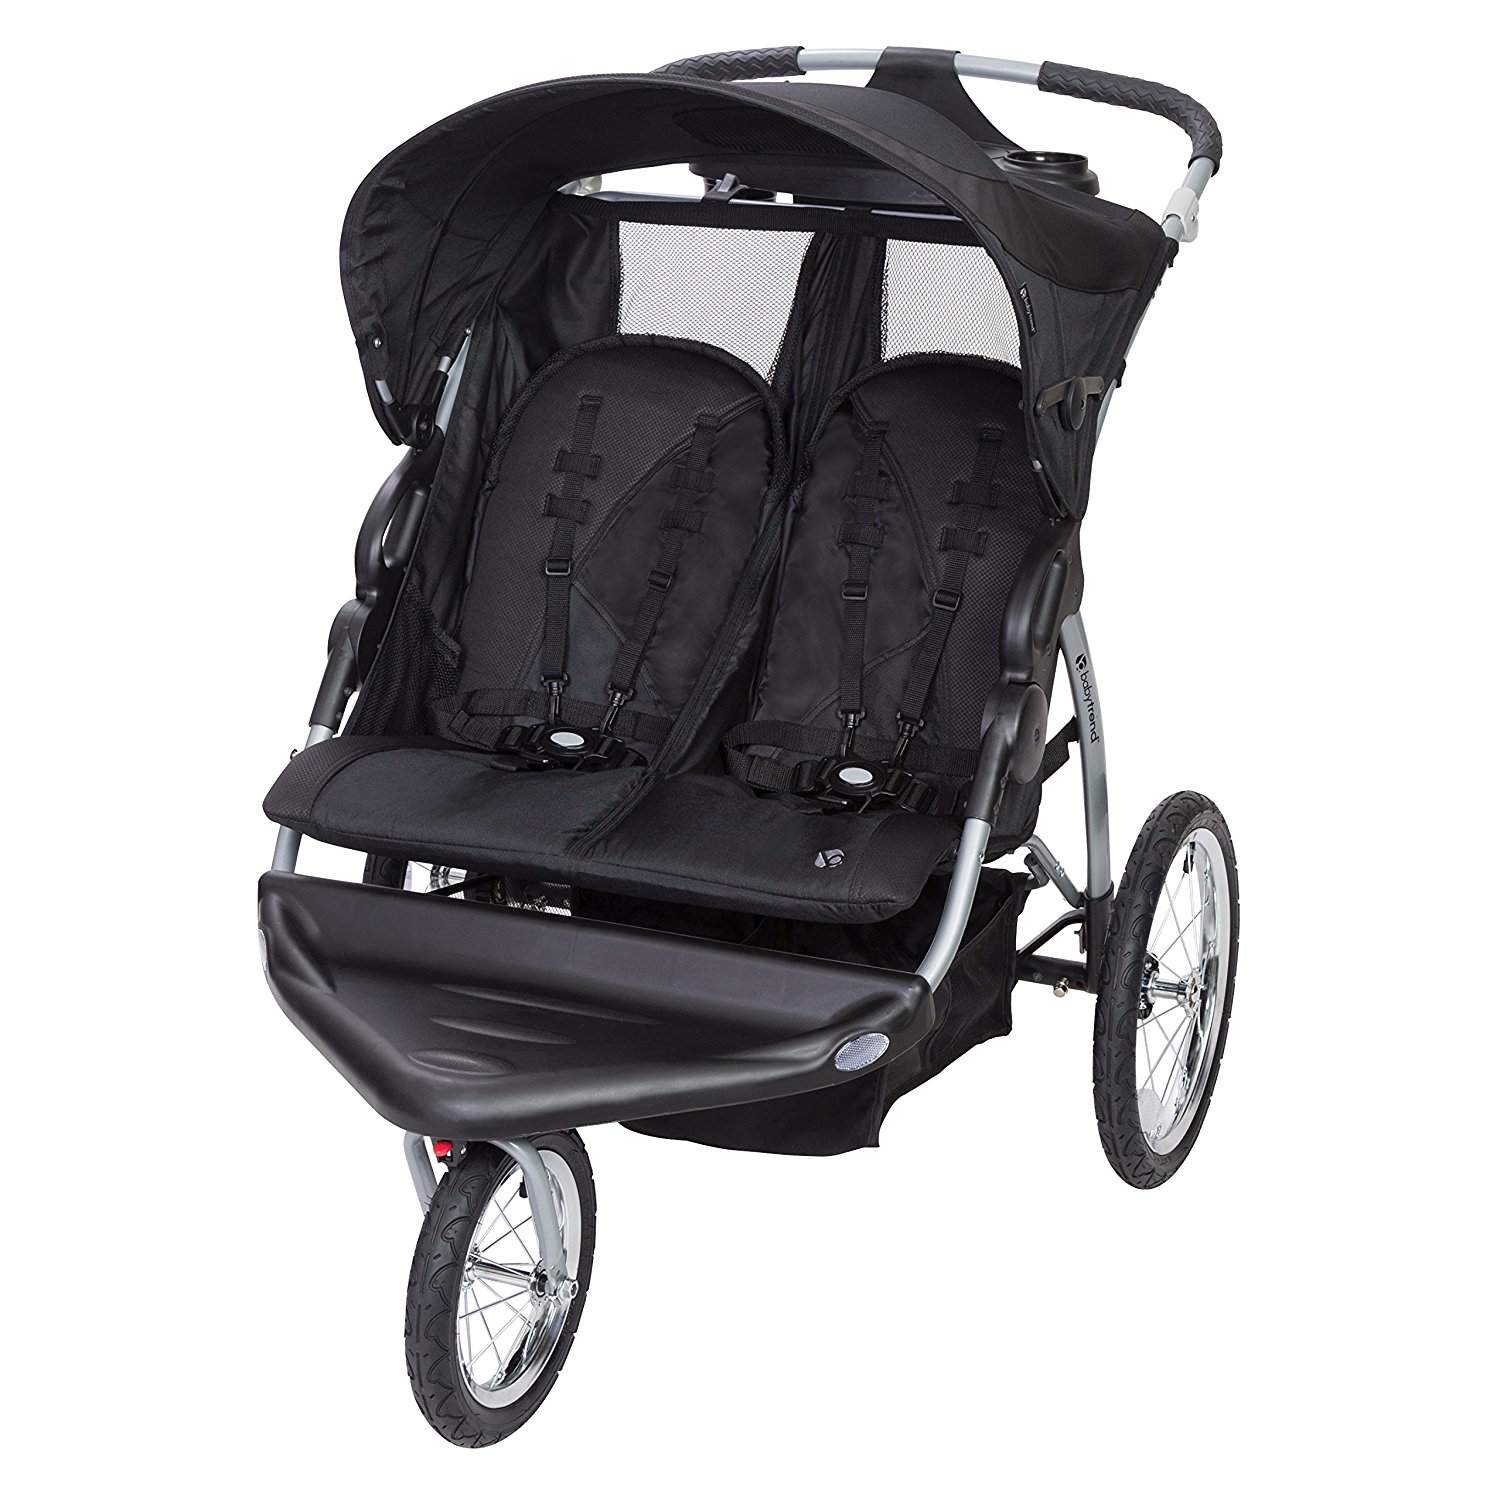 The 5 Best Double Jogging Strollers to Buy in 2018